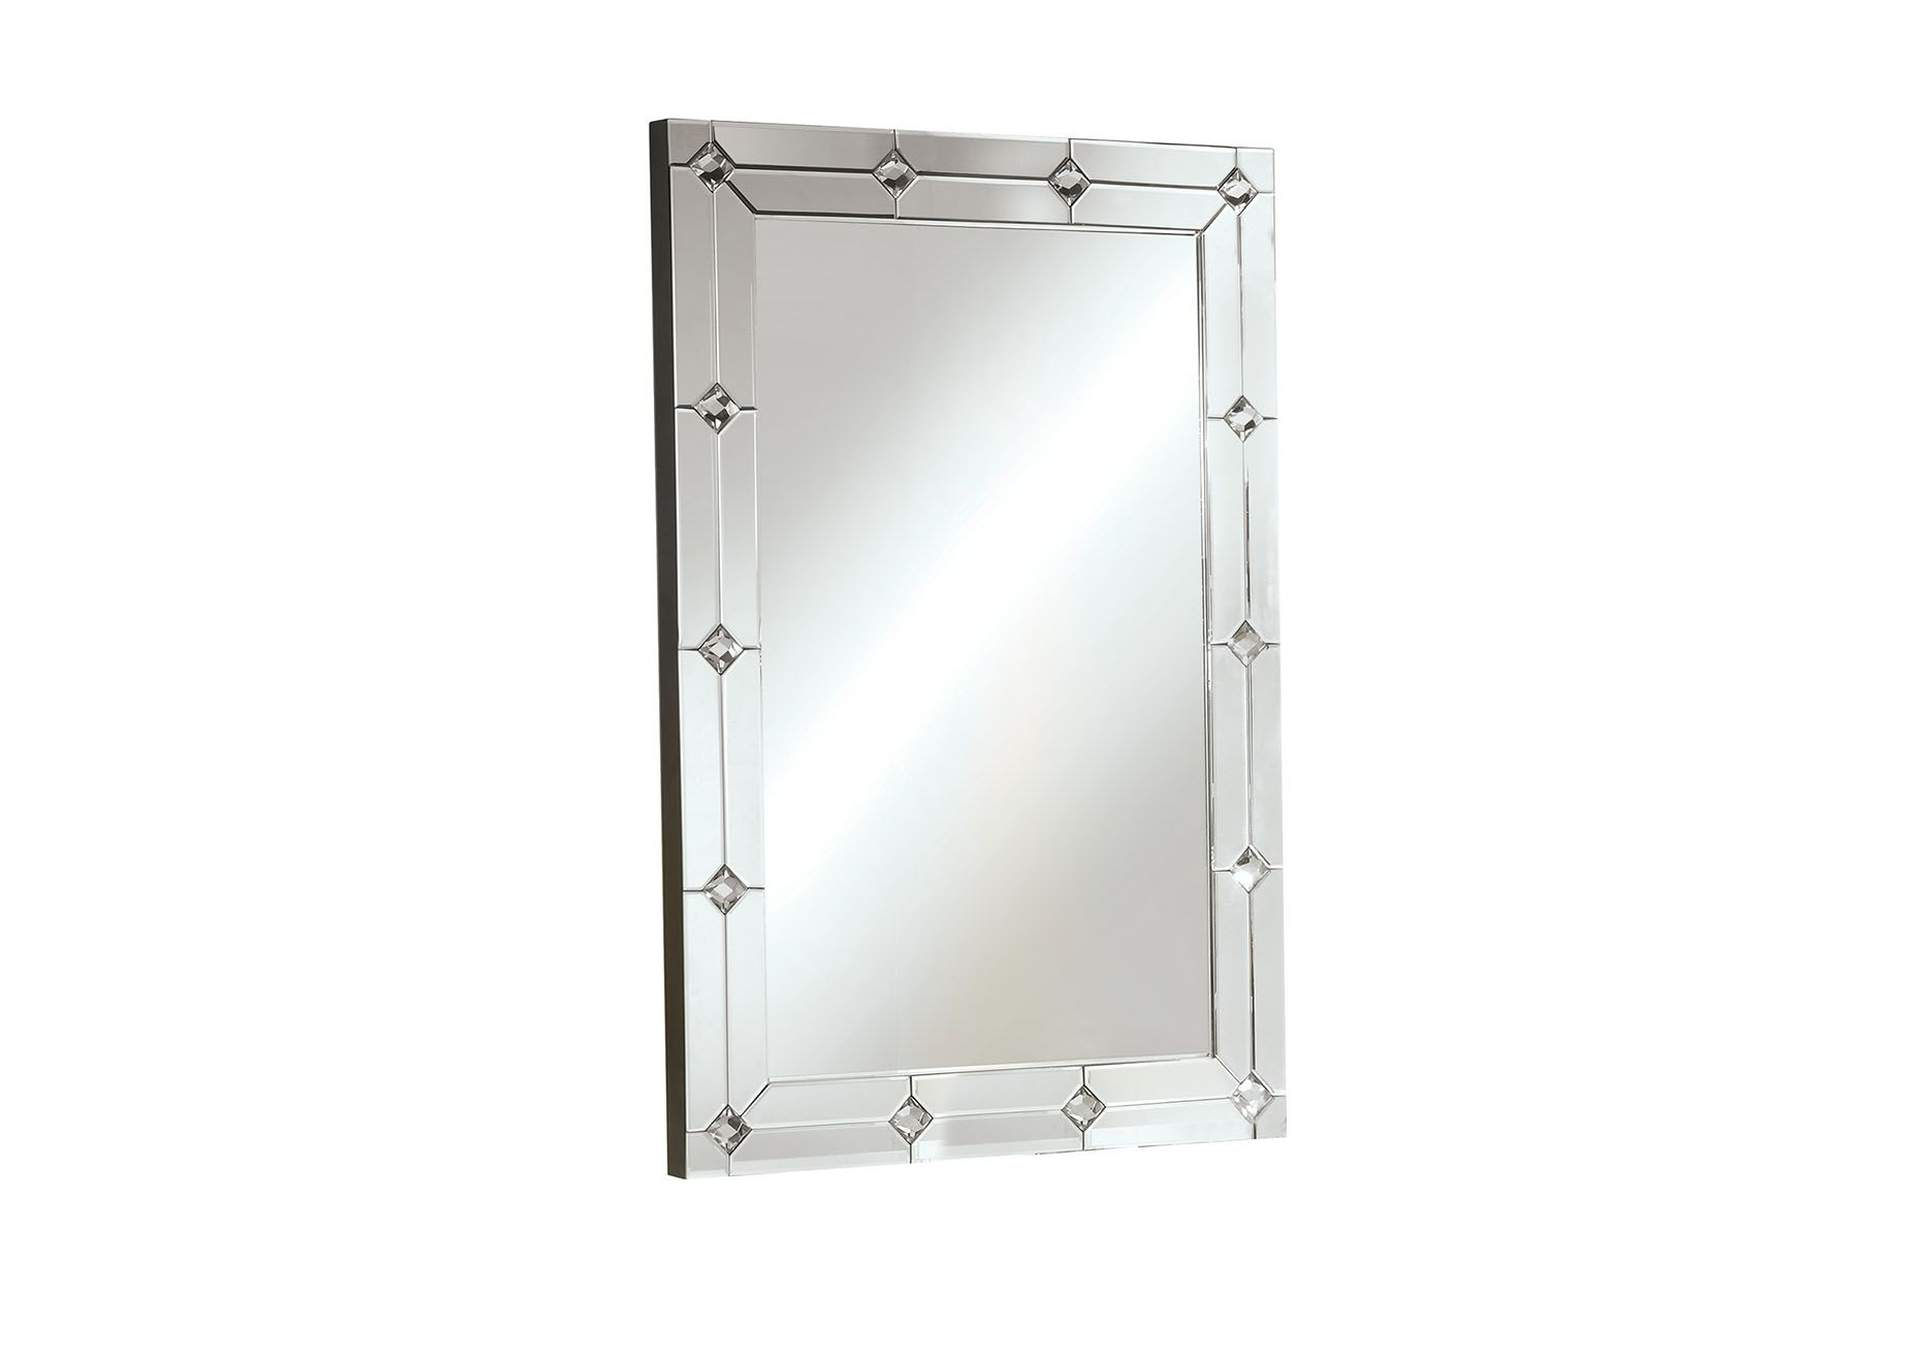 Hessa Mirrored & Faux Rhinestones Wall Decor,Acme